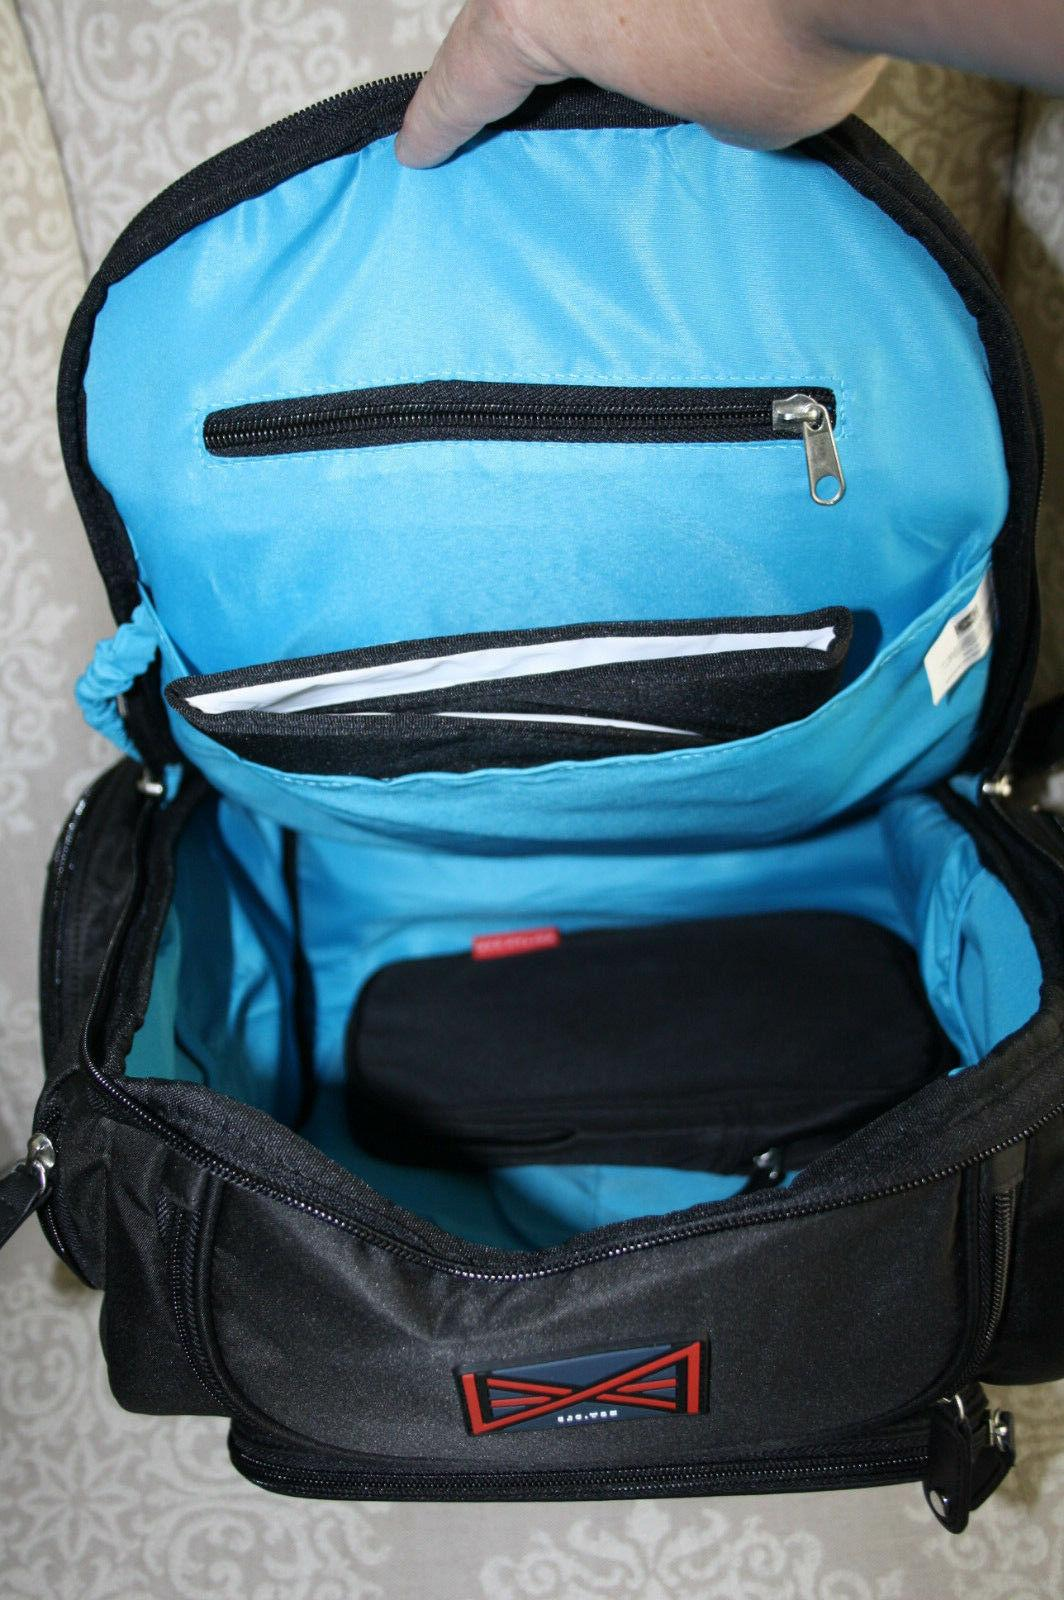 NWT Nation Diaper Bag Backpack w/Changing Pad Pouch